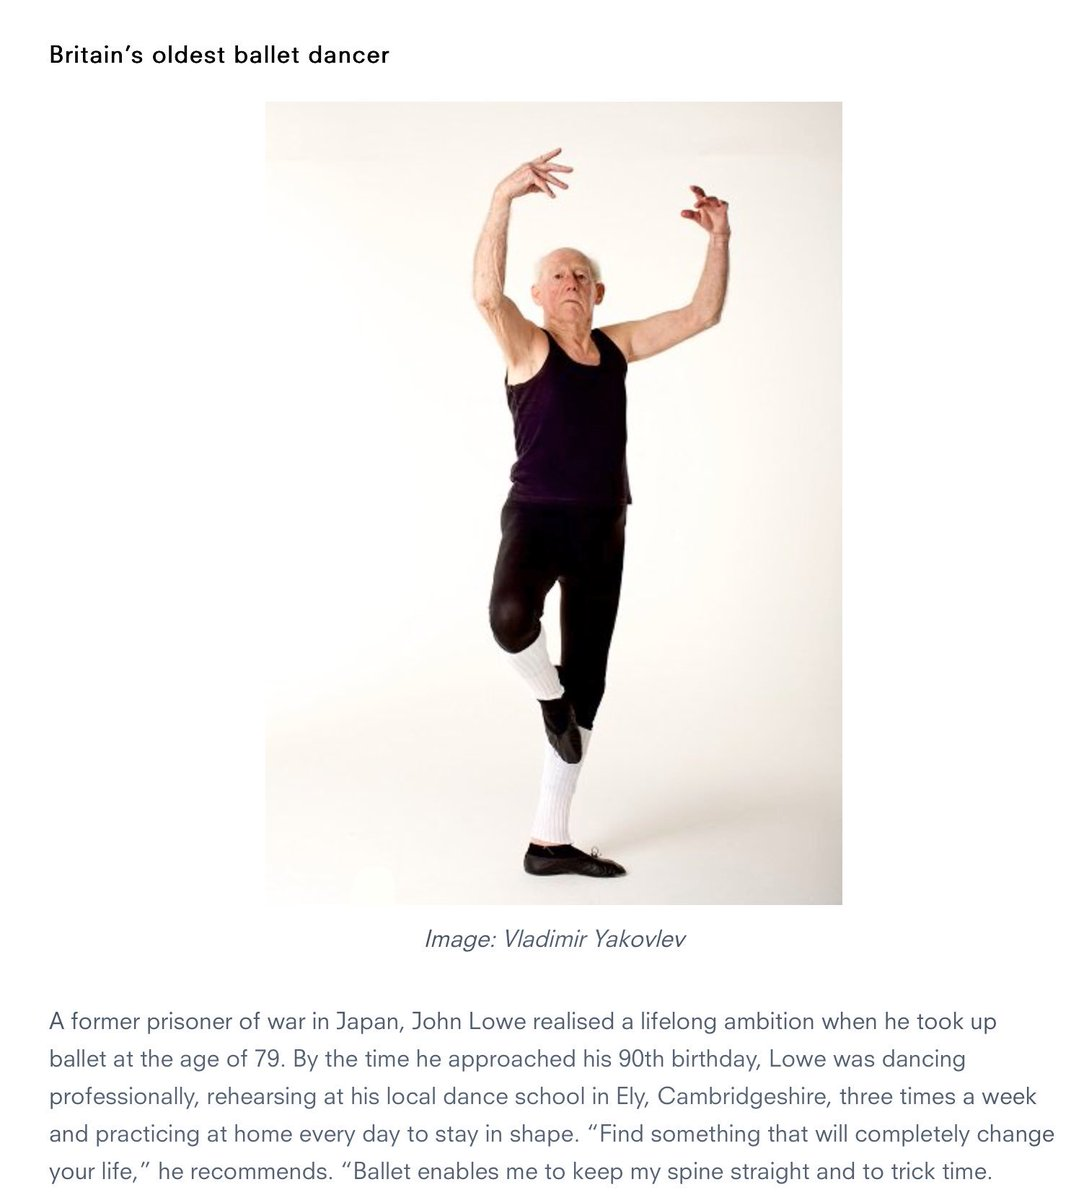 Never too #old to #dance Follow John Lowe&#39;s example; he took up #ballet at 79 &amp; still dancing at over 90 Fabulous  @onedanceuk #ageing well<br>http://pic.twitter.com/7yJ5figaTn